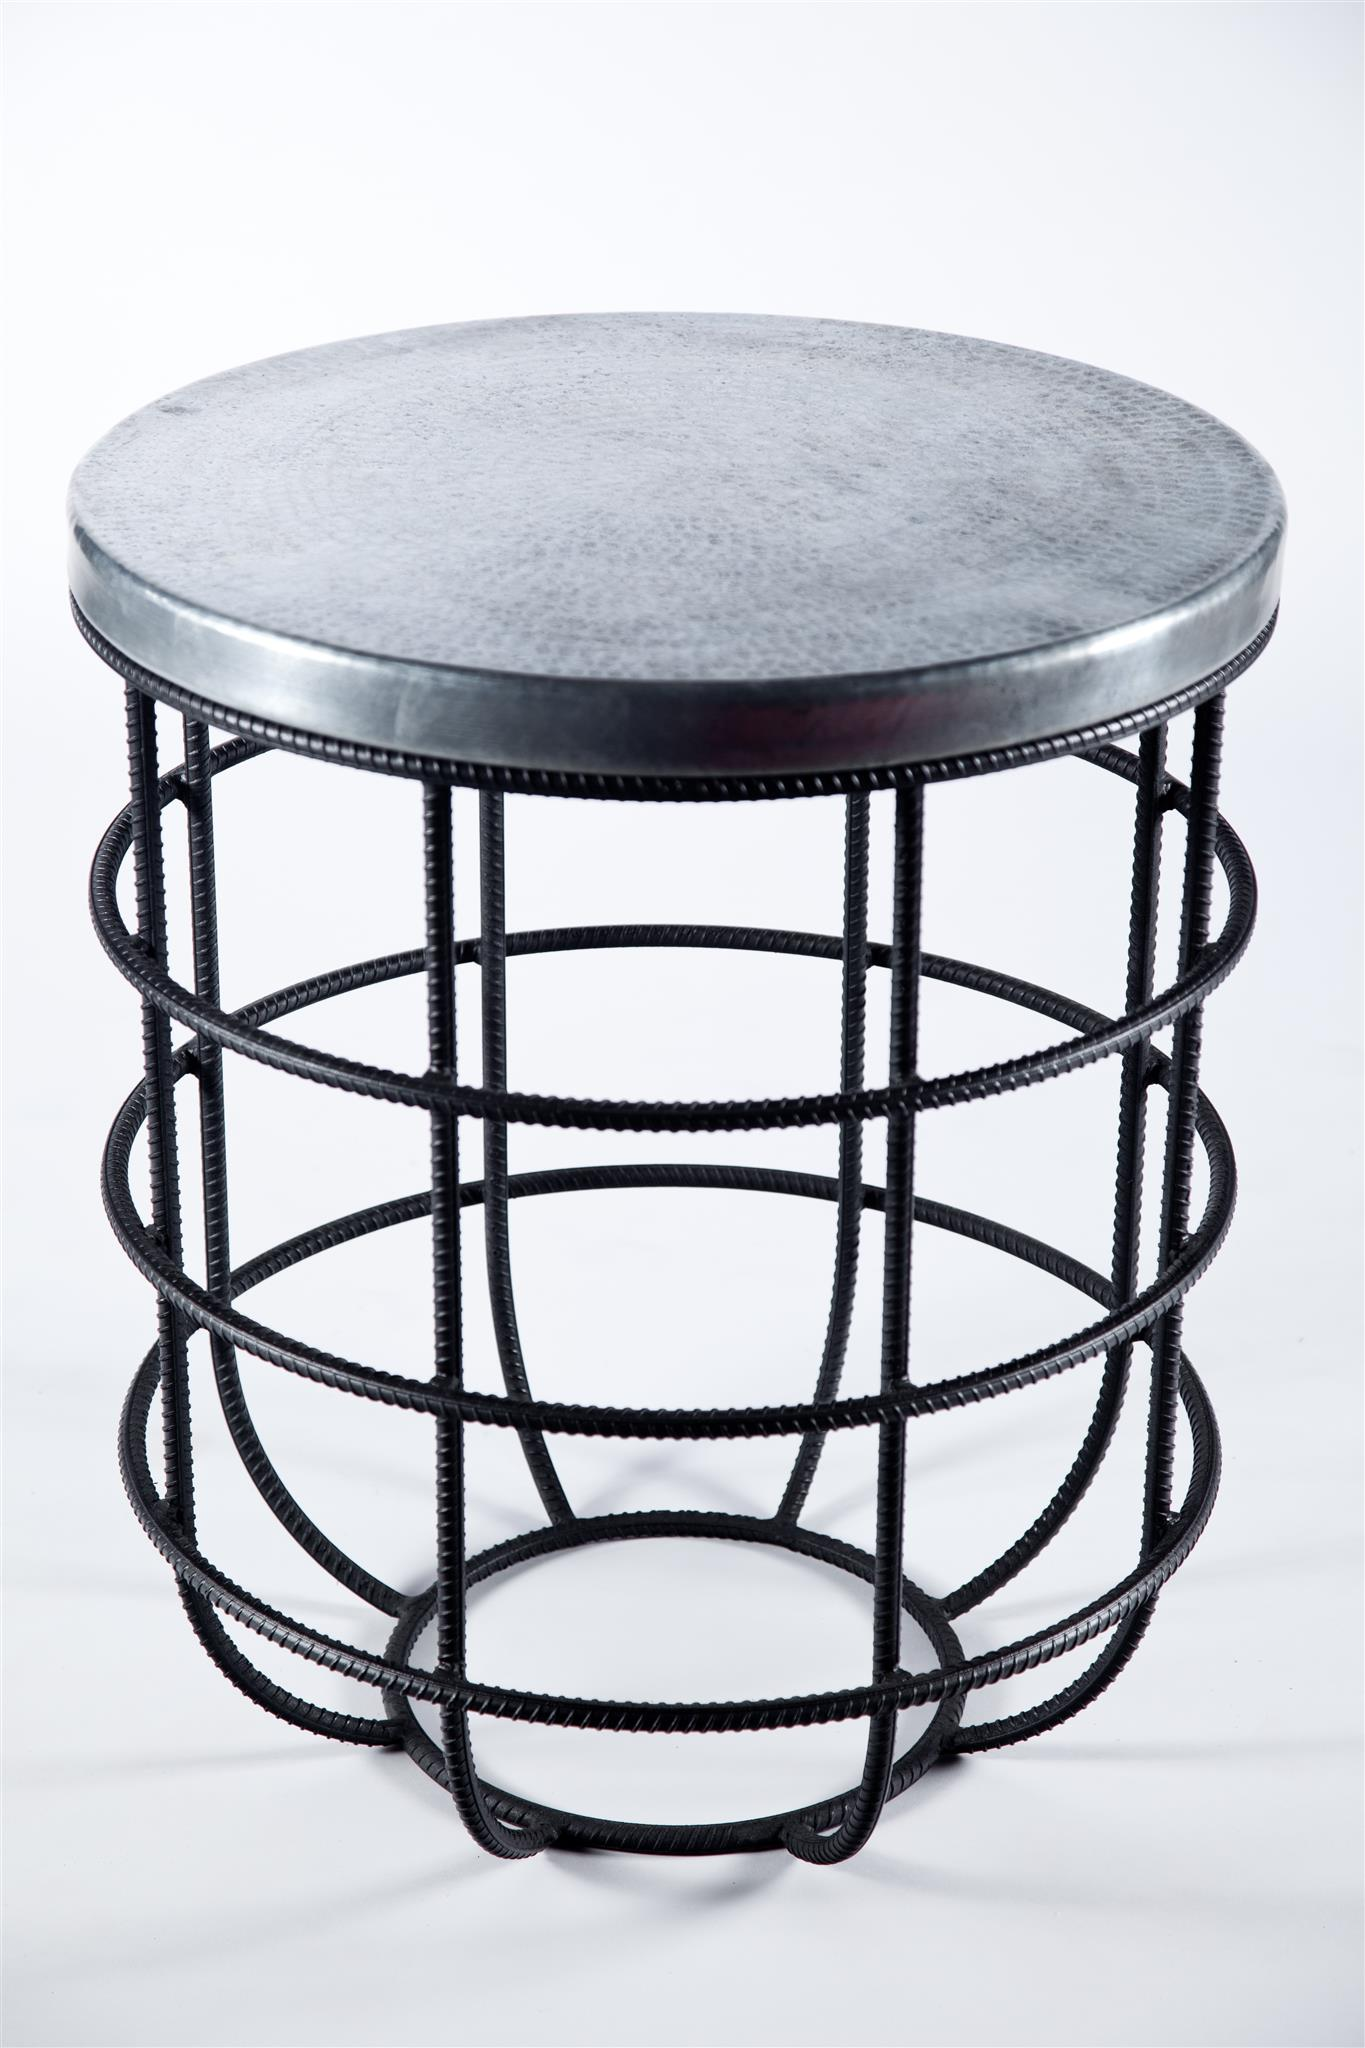 Wondrous Axel Side Table In Rebar With Round Hammered Zinc Top Gamerscity Chair Design For Home Gamerscityorg